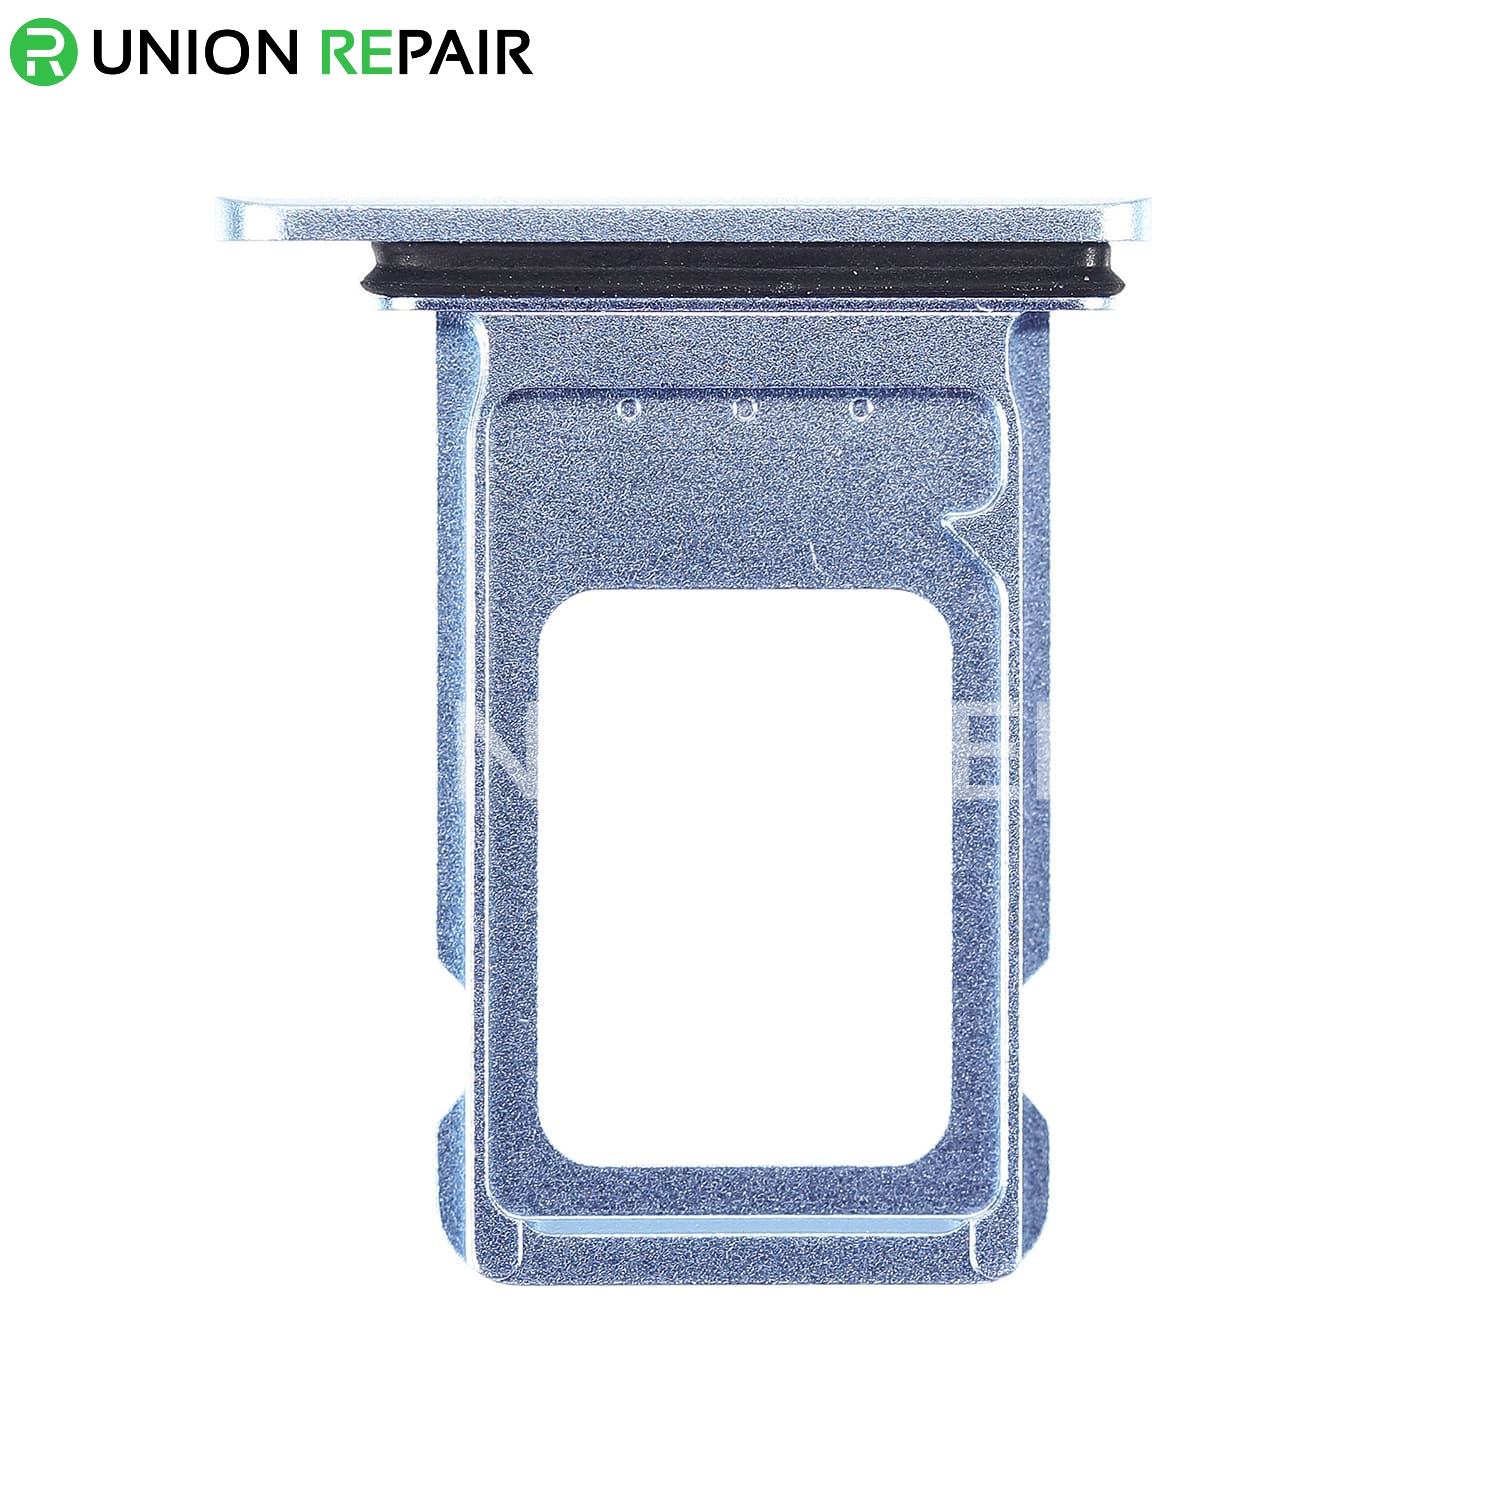 Replacement for iPhone XR Dual SIM Card Tray - Blue